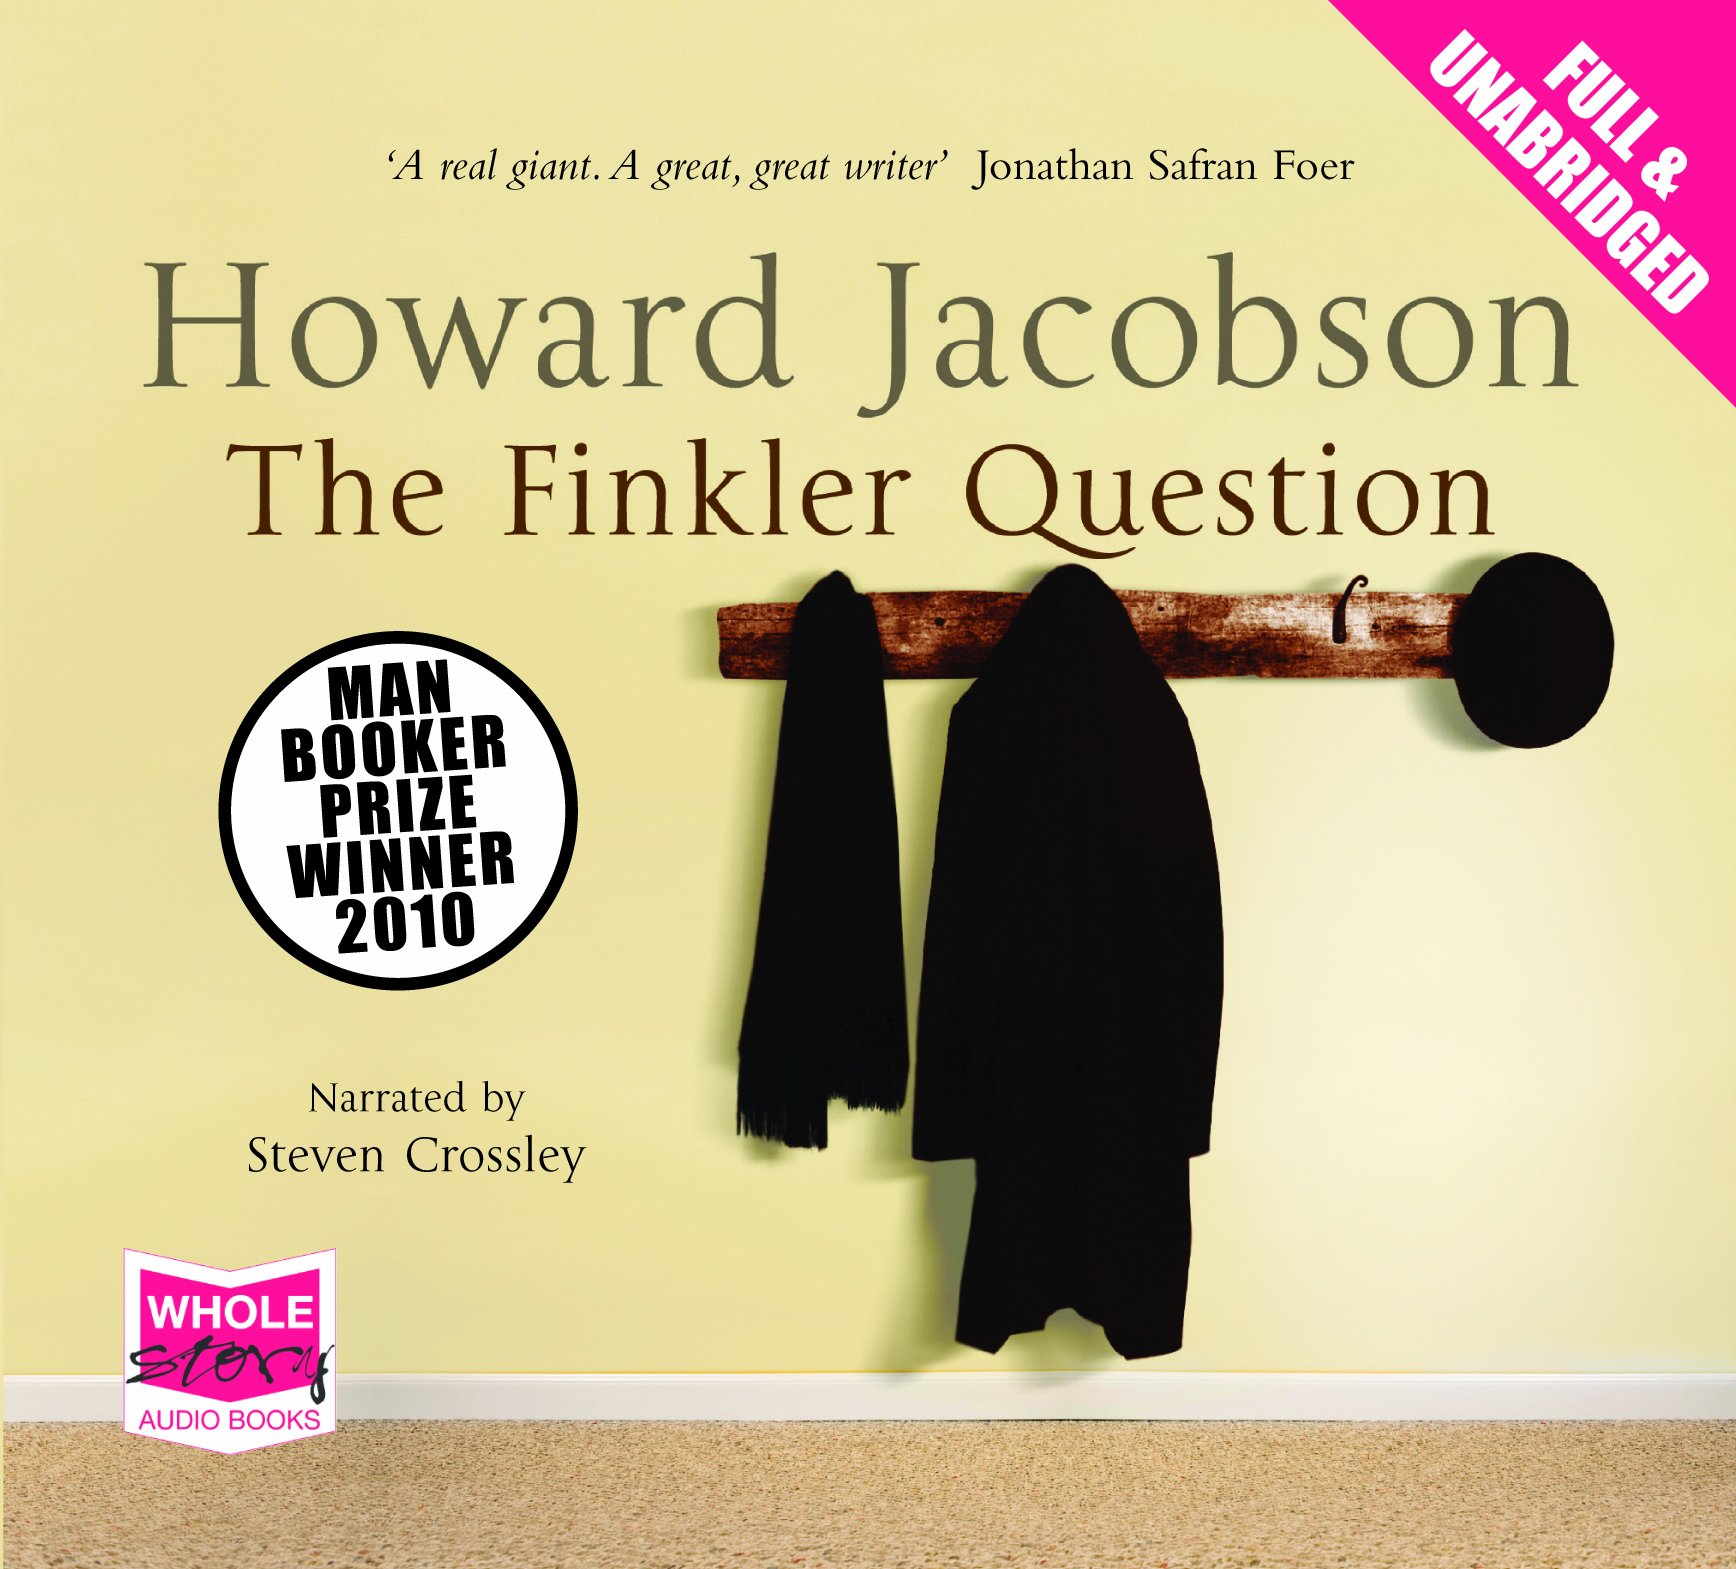 Buy The Finkler Question Book Online At Low Prices In India  The Finkler  Question Reviews & Ratings  Amazon